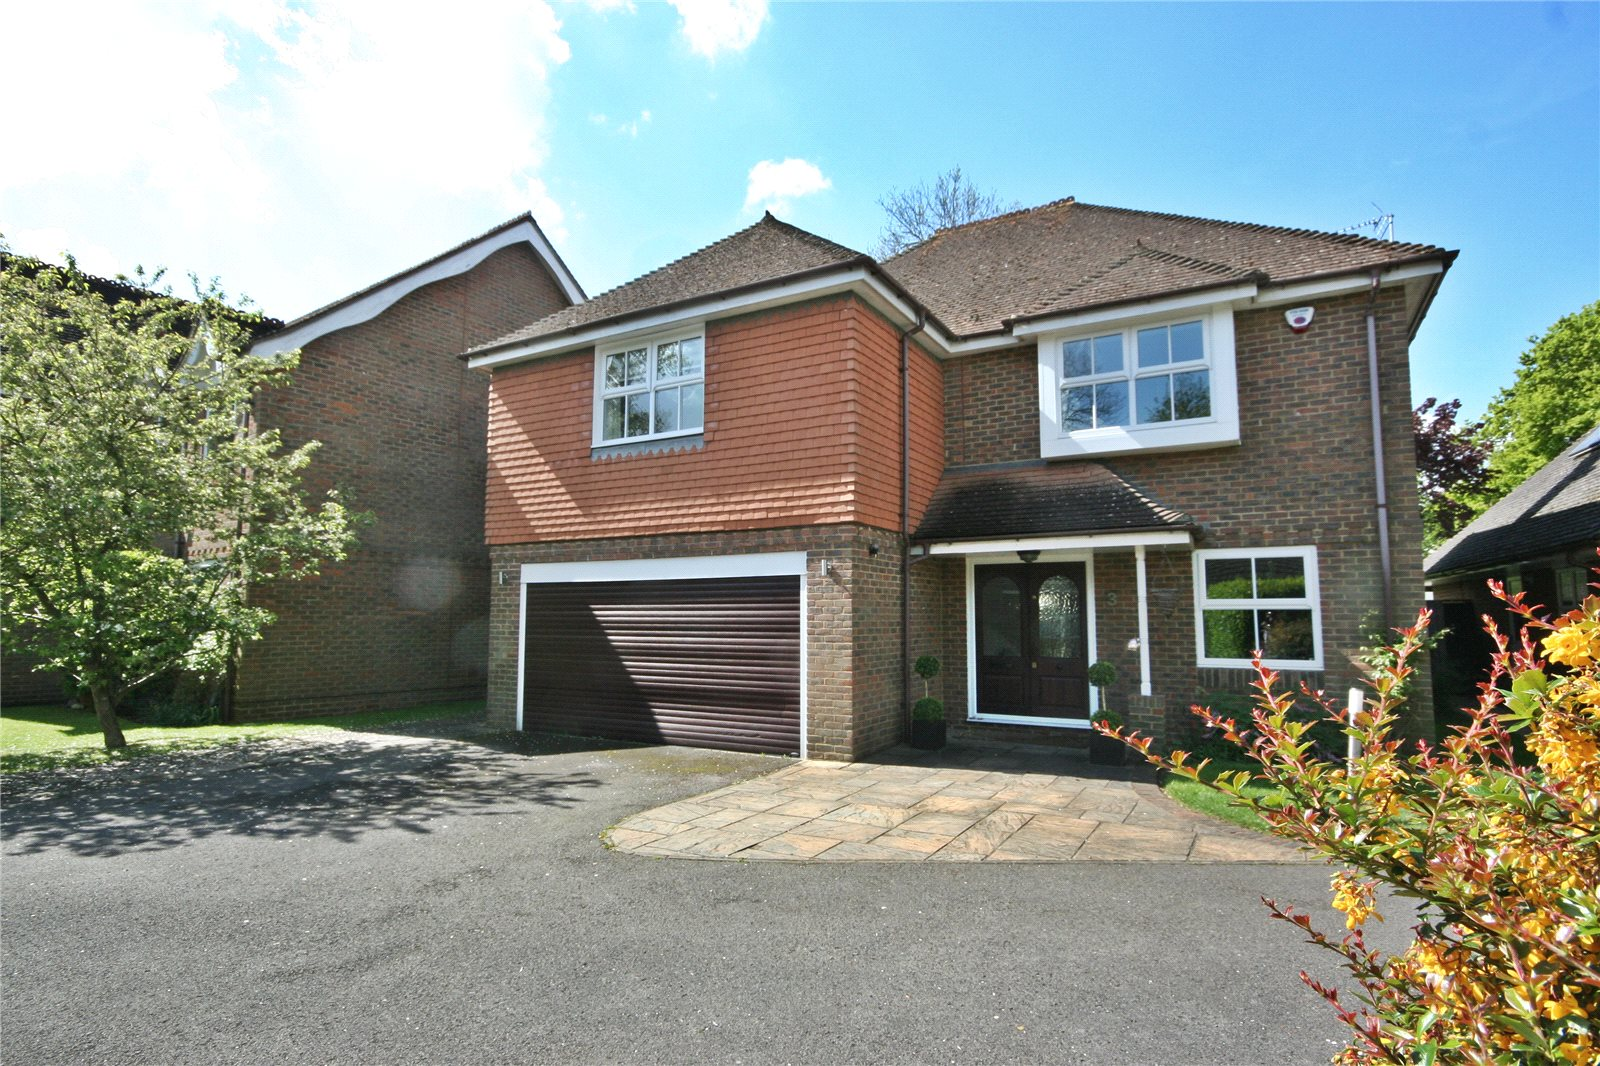 Additional photo for property listing at Bramble Close, Chalfont St Peter, Buckinghamshire, SL9 Chalfont St Peter, Angleterre